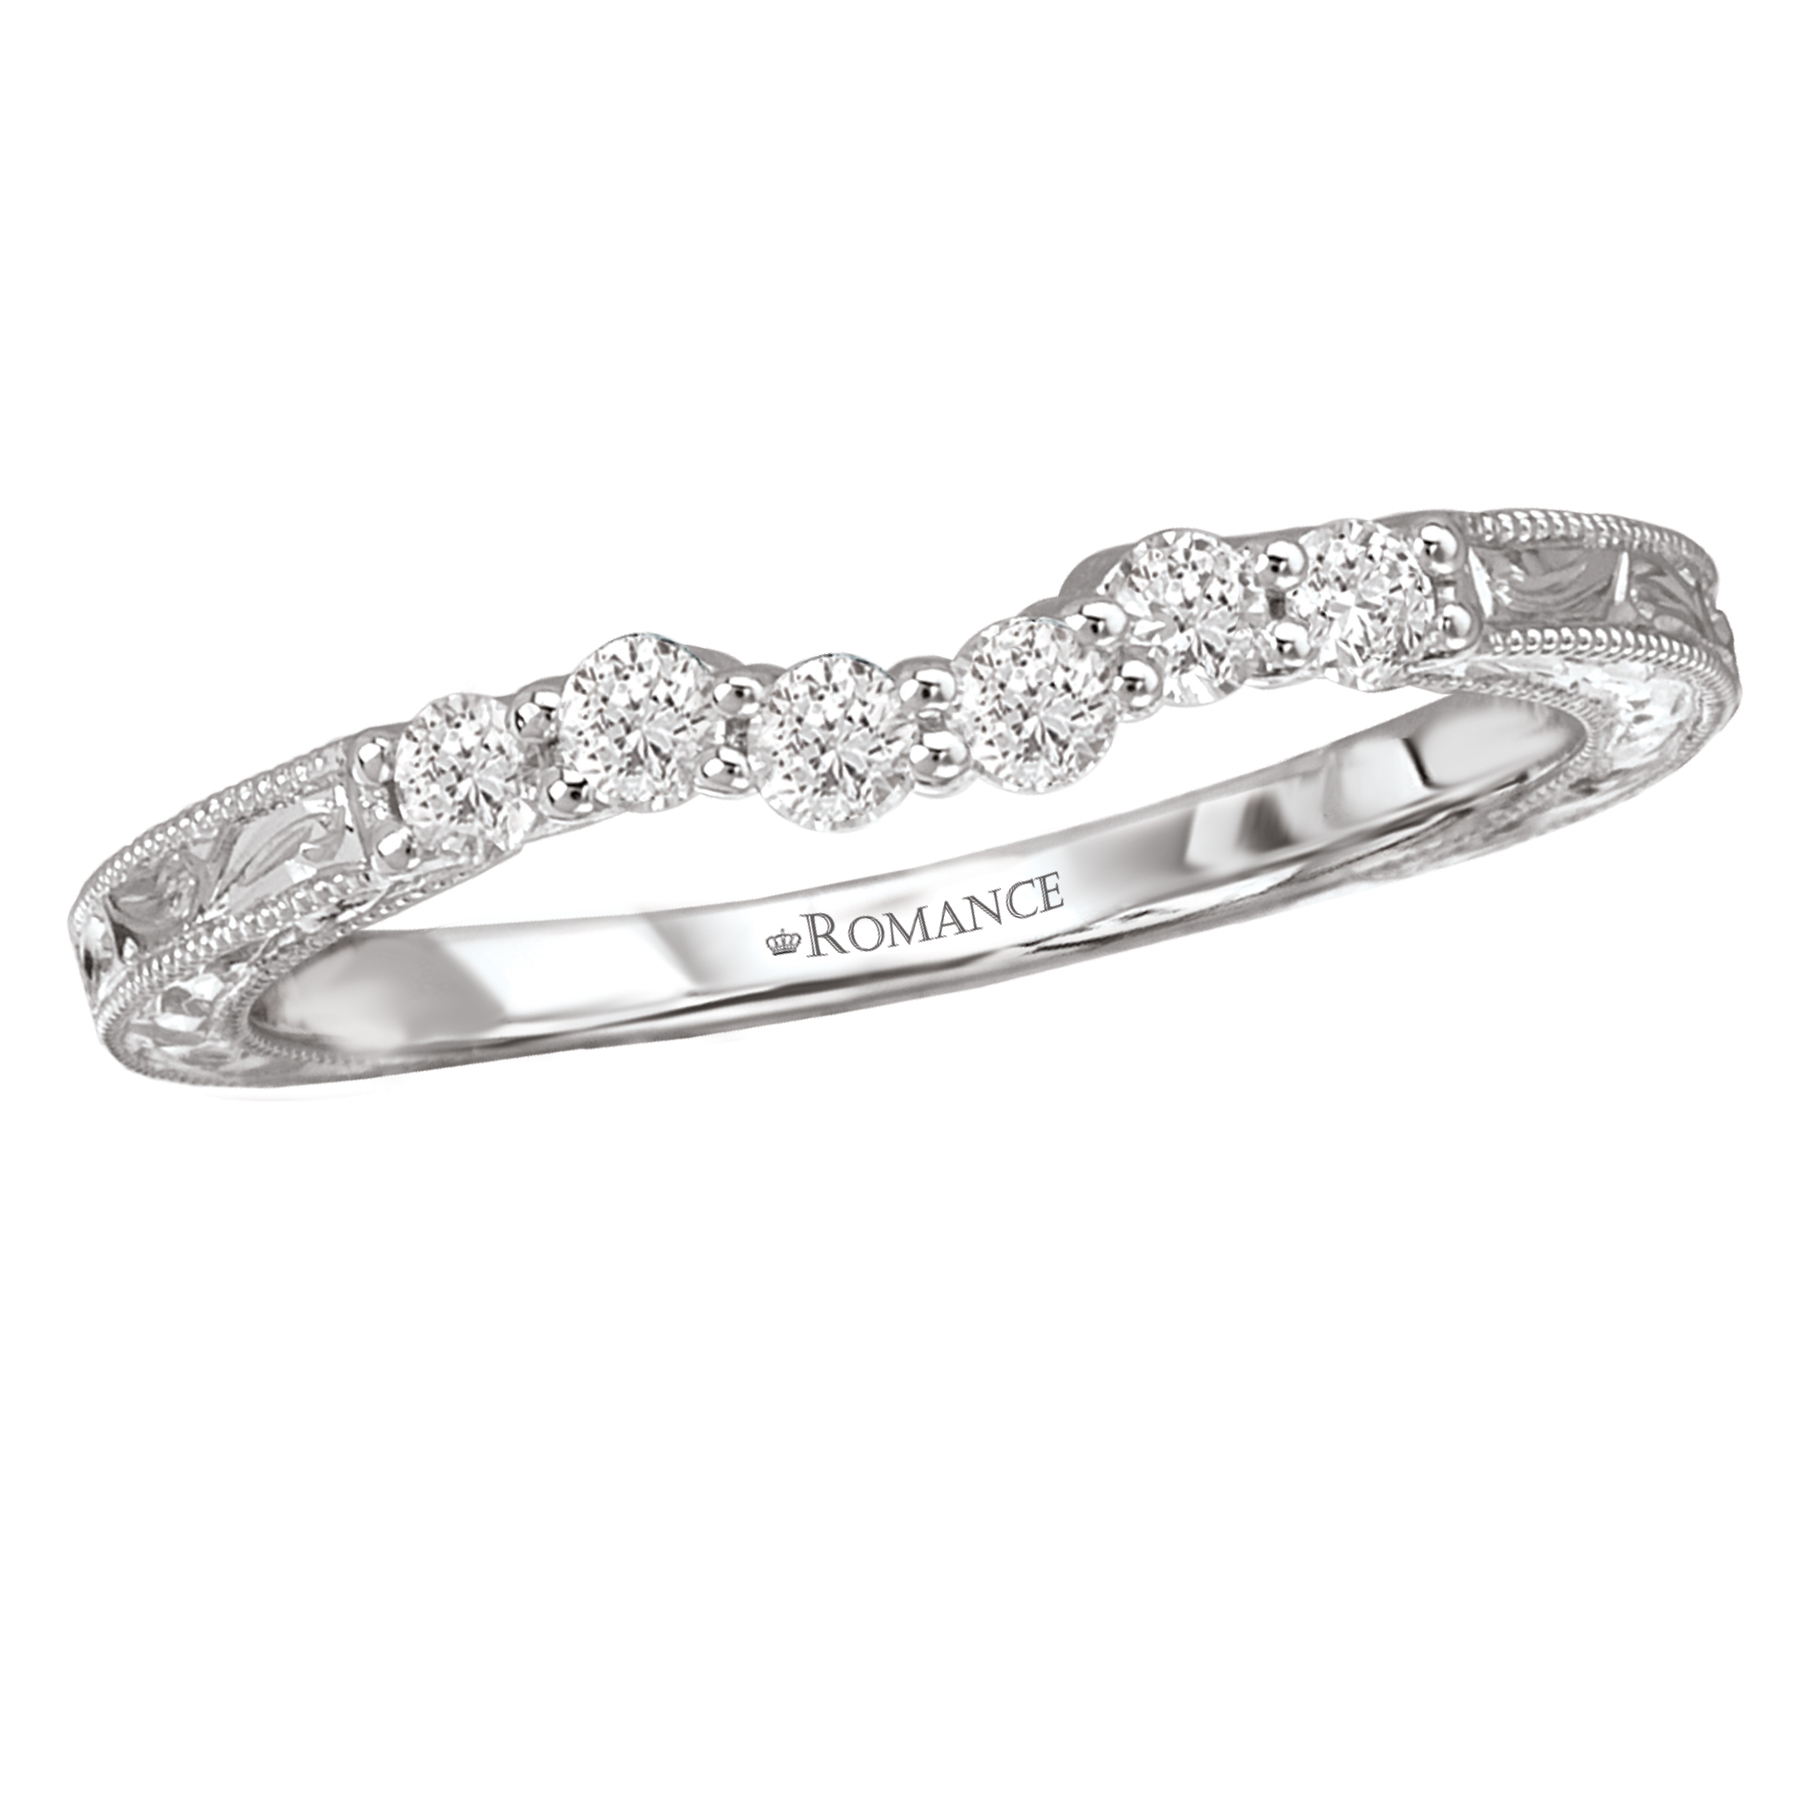 Romance Wedding Bands 117556-100W product image